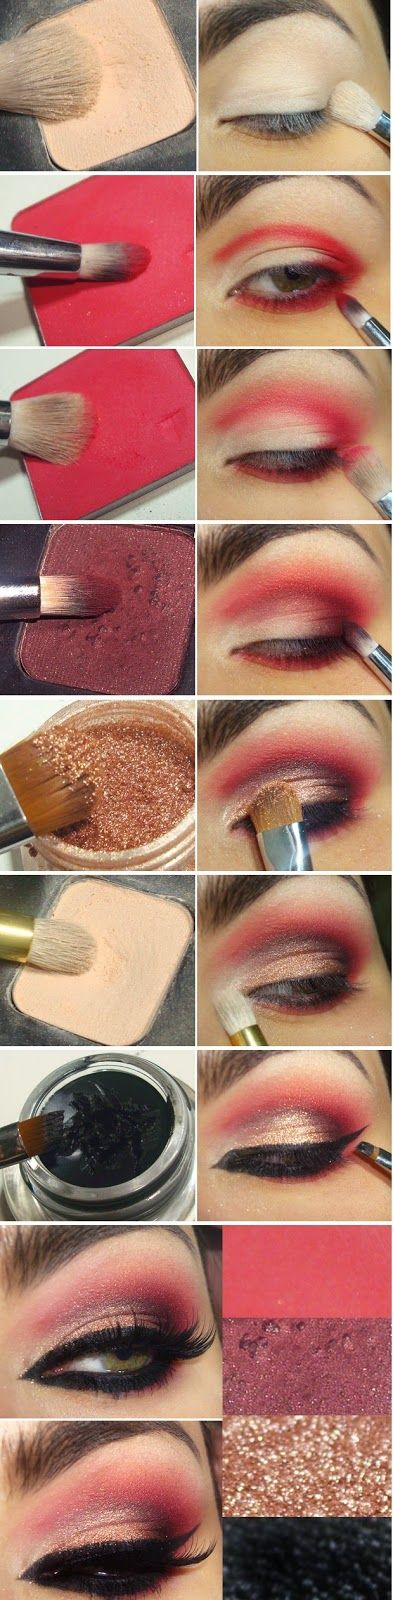 Wonderful Red and Gold with Black Eyeliner Makeup Tutorials / Best LoLus Makeup Fashion